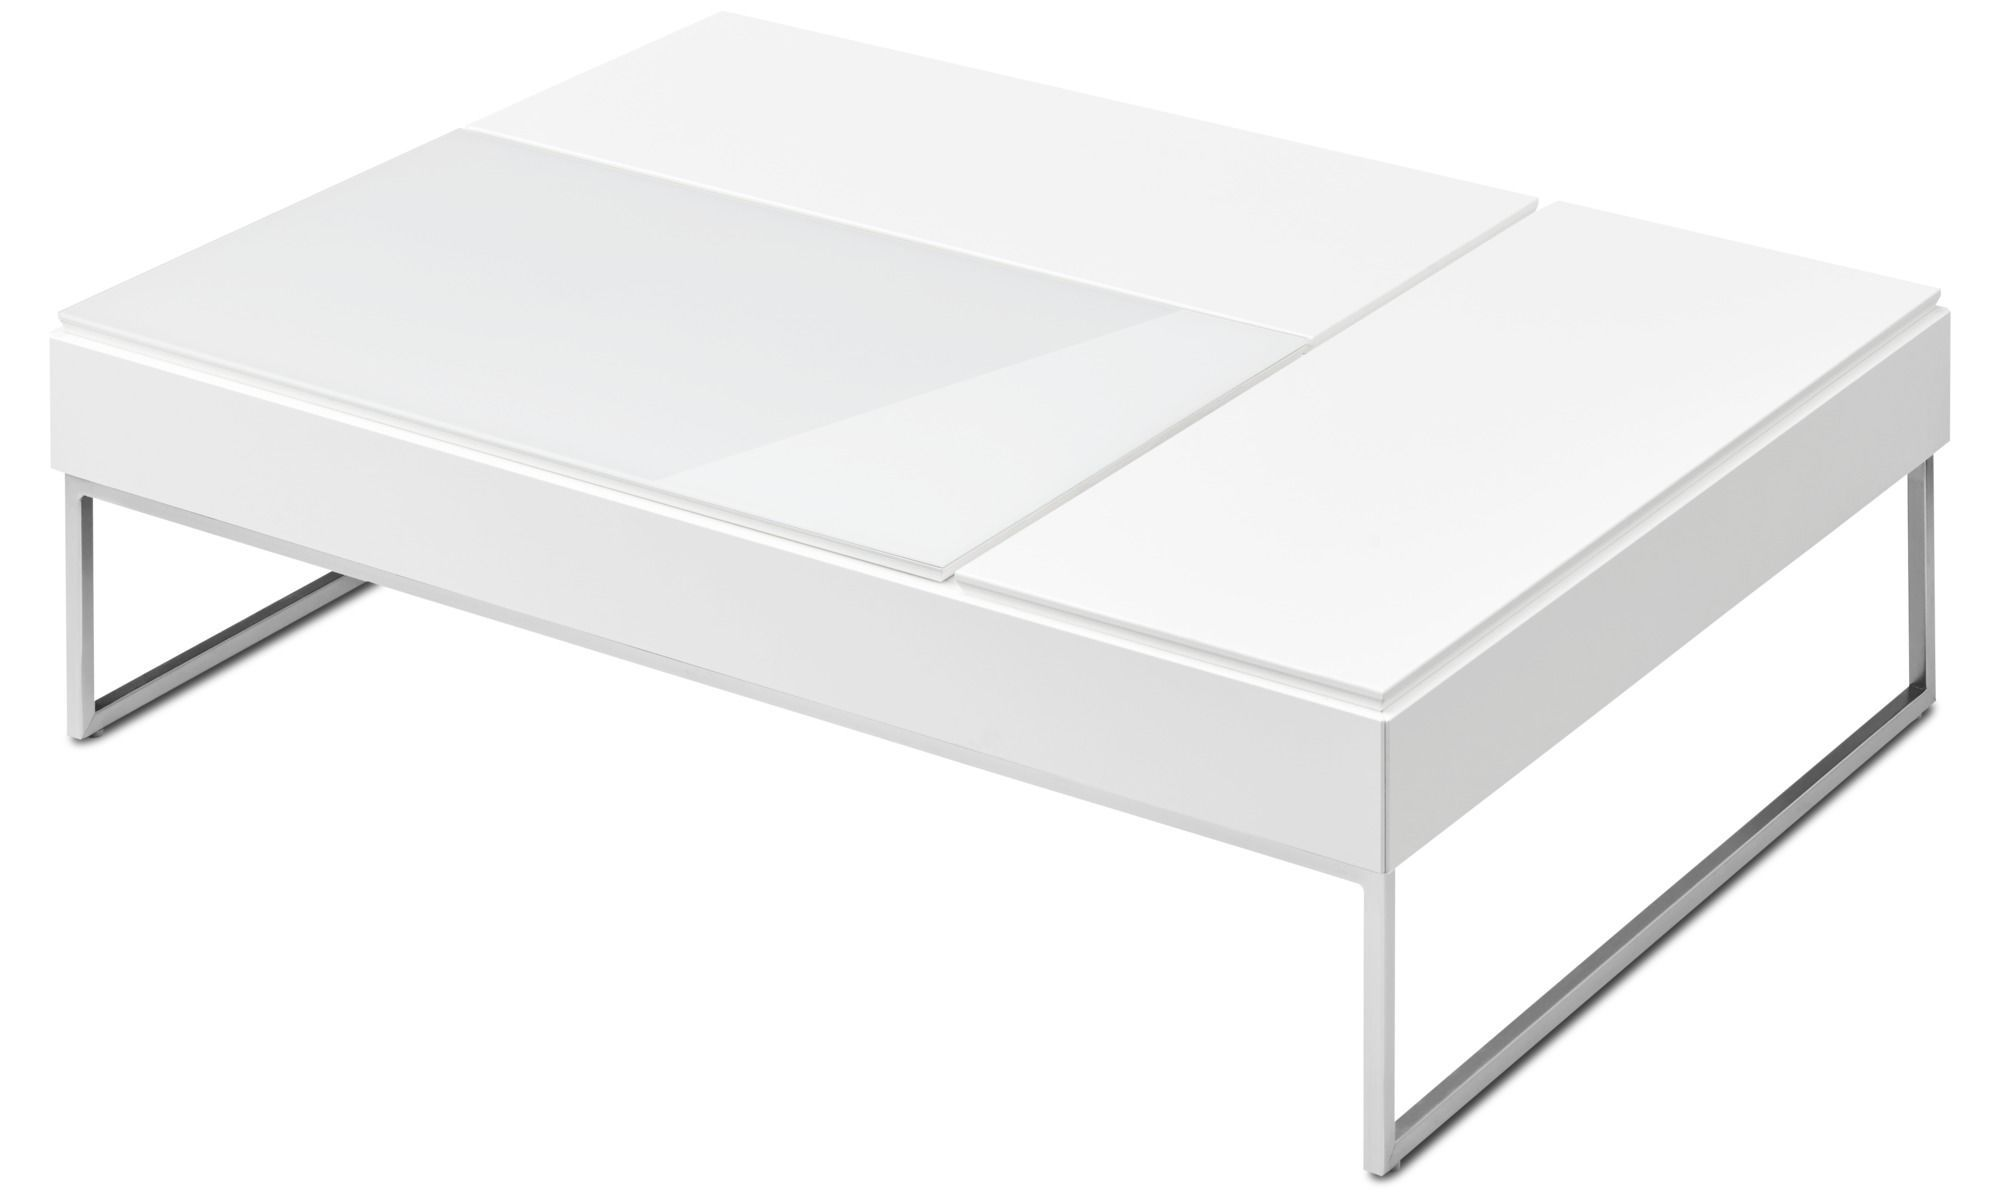 Chiva Functional Coffee Table With Storage White Glass Coffee Table Coffee Table With Storage Table